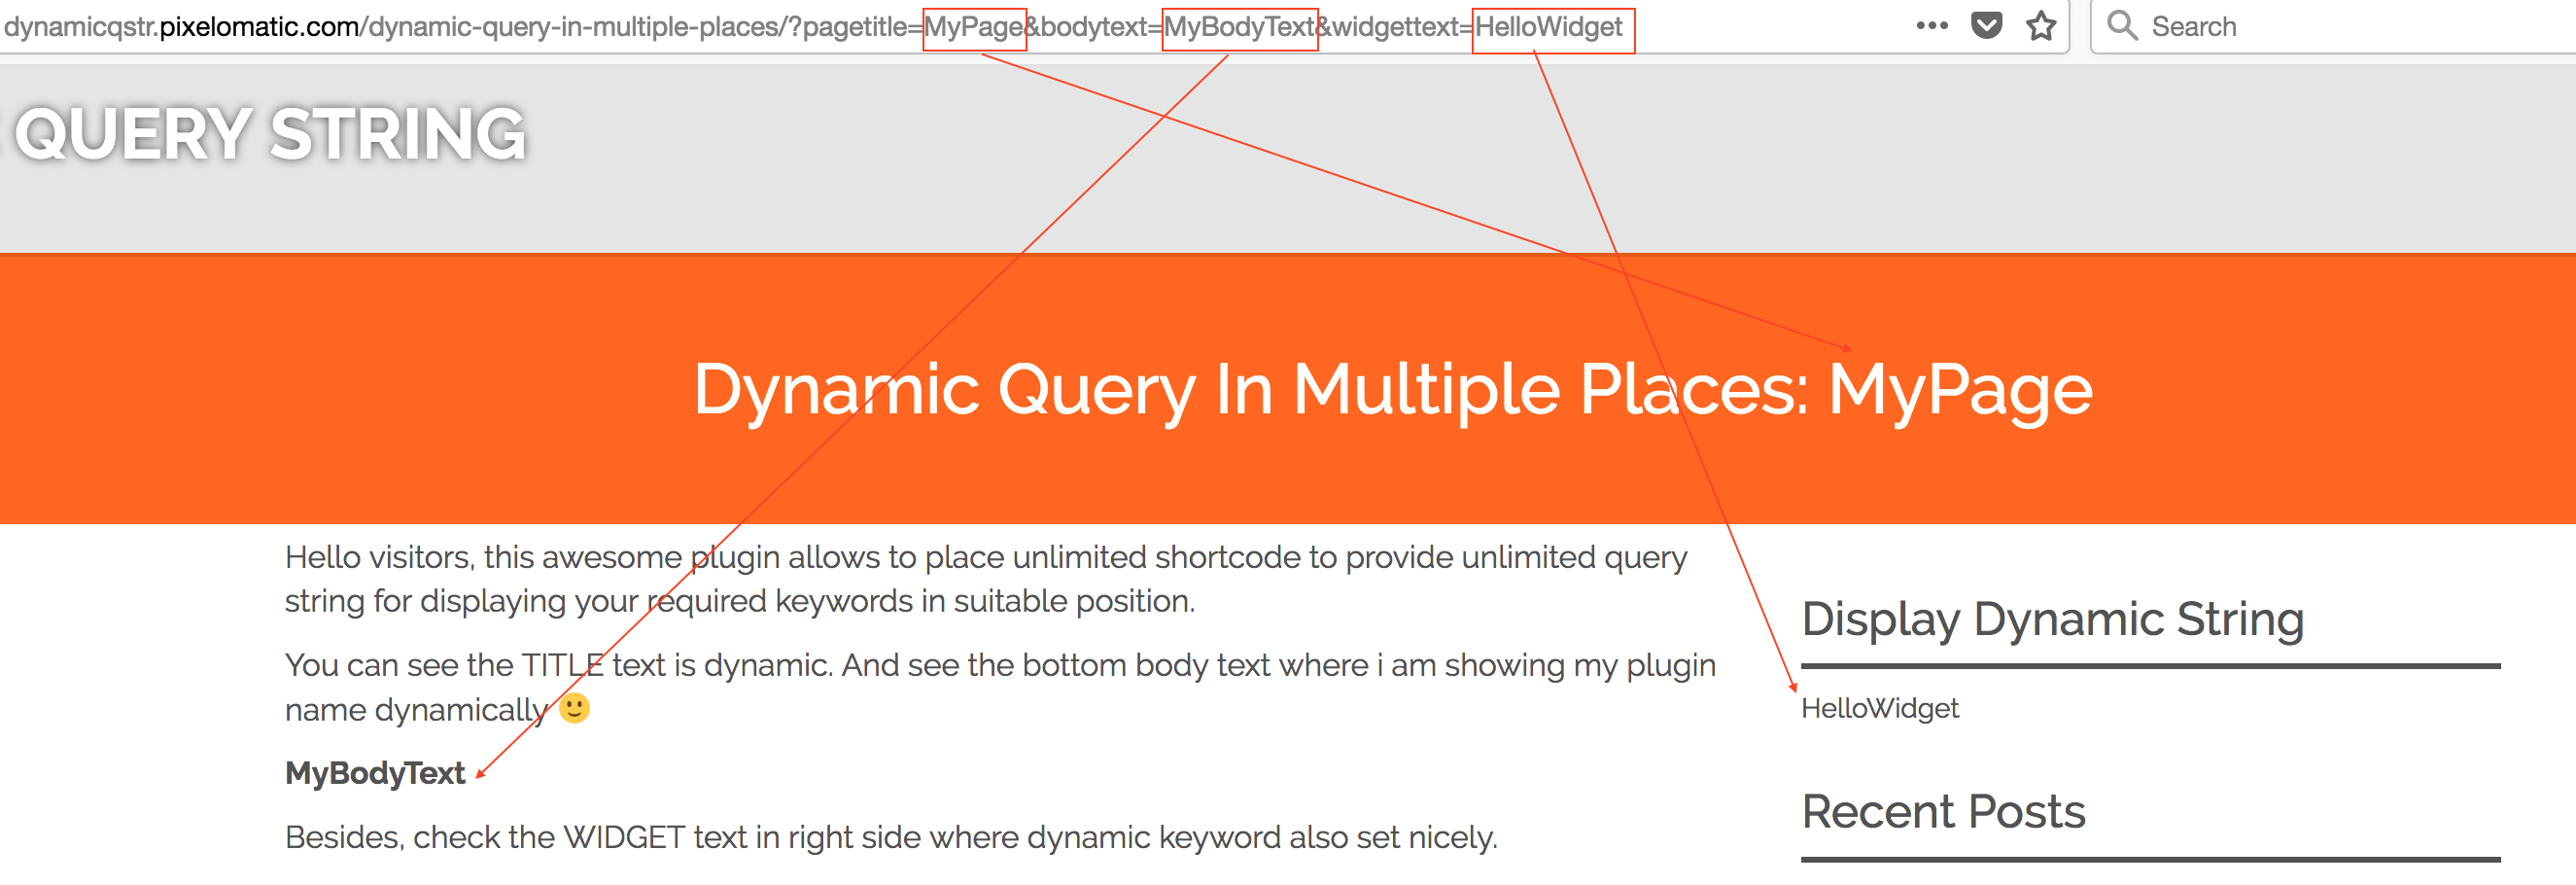 dynamic query string